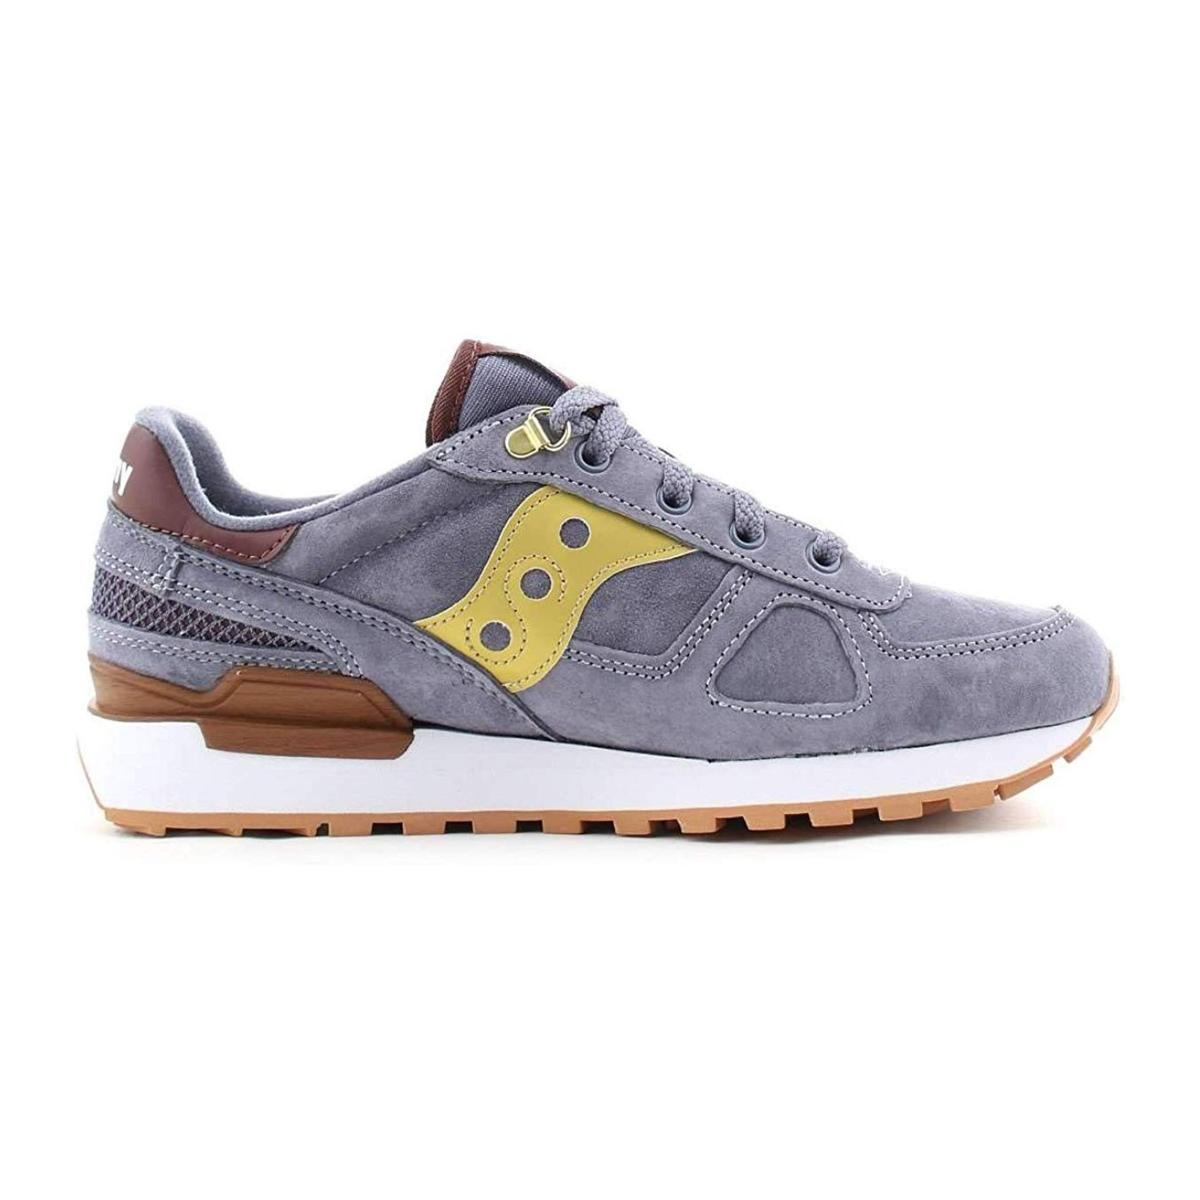 Scarpe Sneakers Saucony Shadow Original Limited Edition Uomo Rif. S70420-2